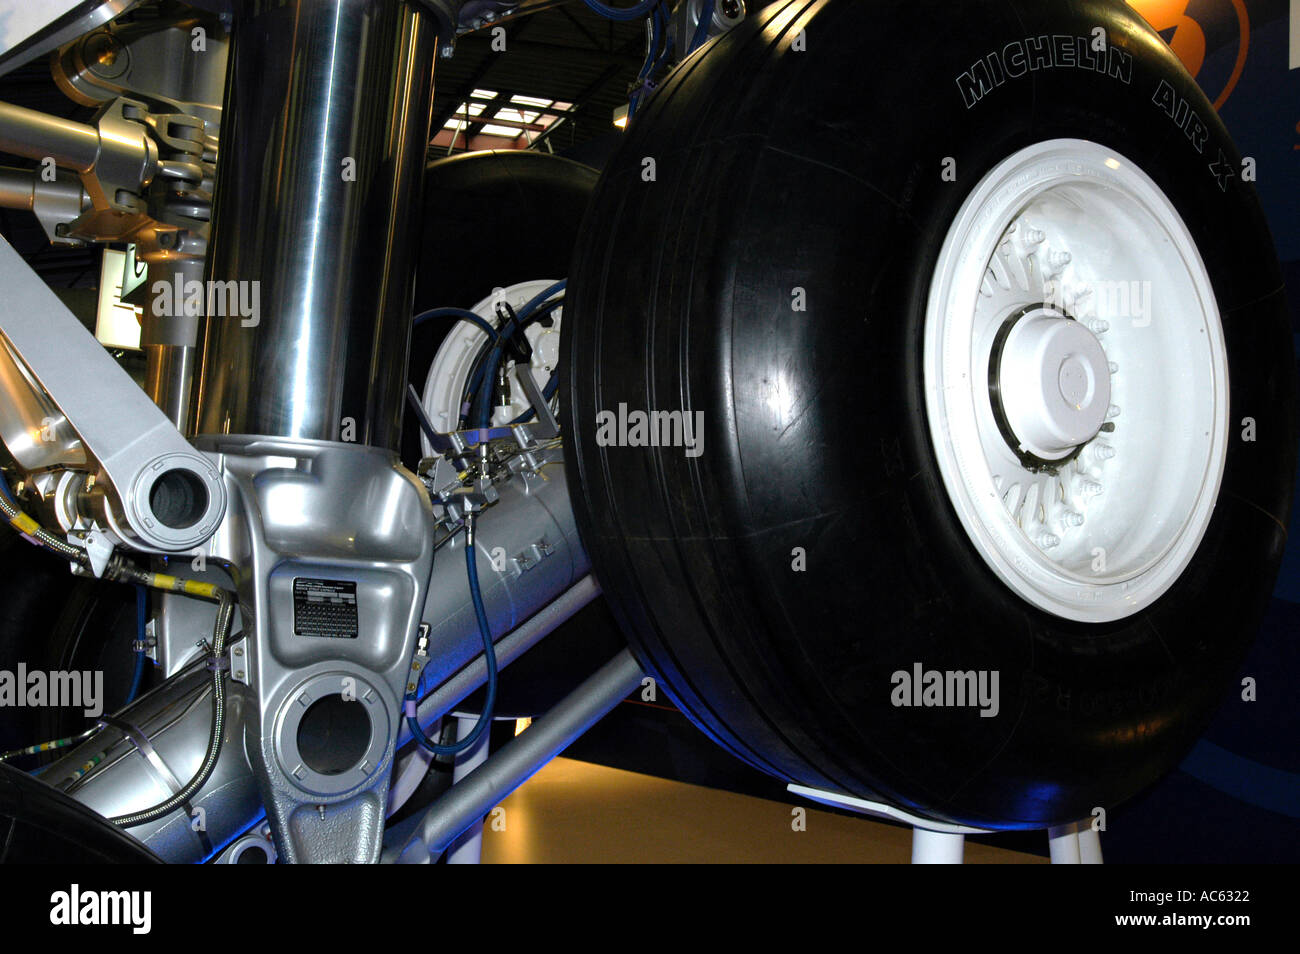 Aeroplane Wheel Stock Photos & Aeroplane Wheel Stock Images